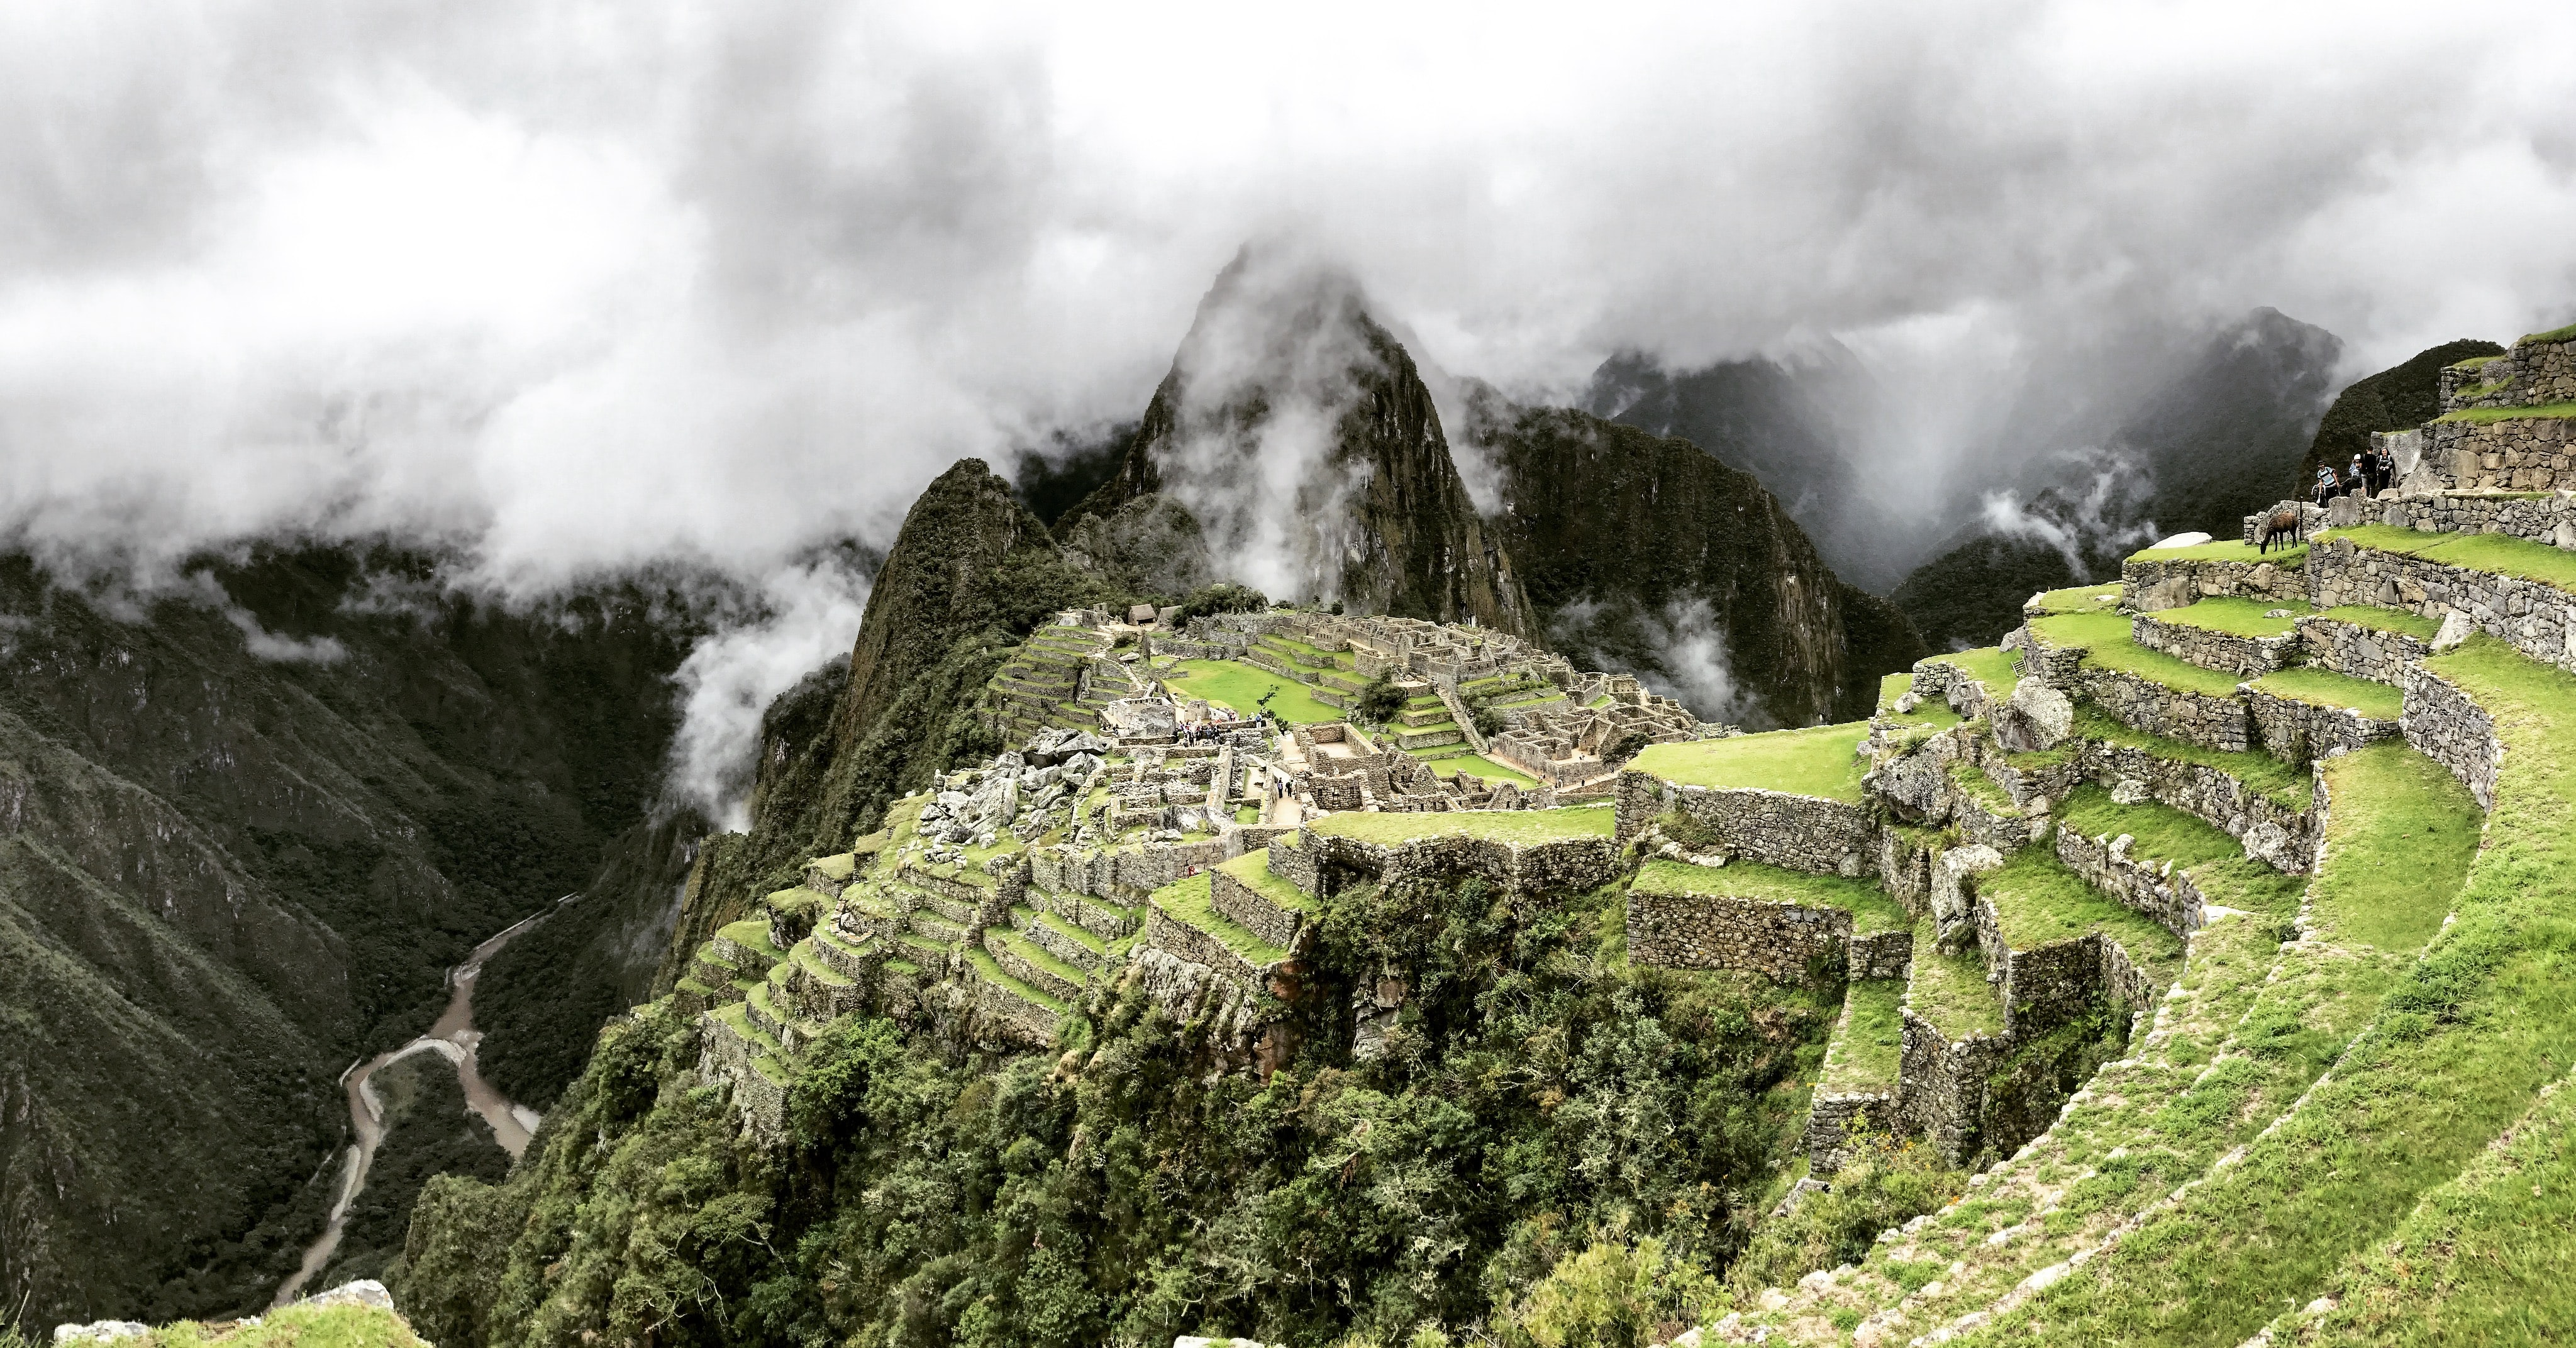 Spectacular view of the green terraces of the Machu Picchu ruins